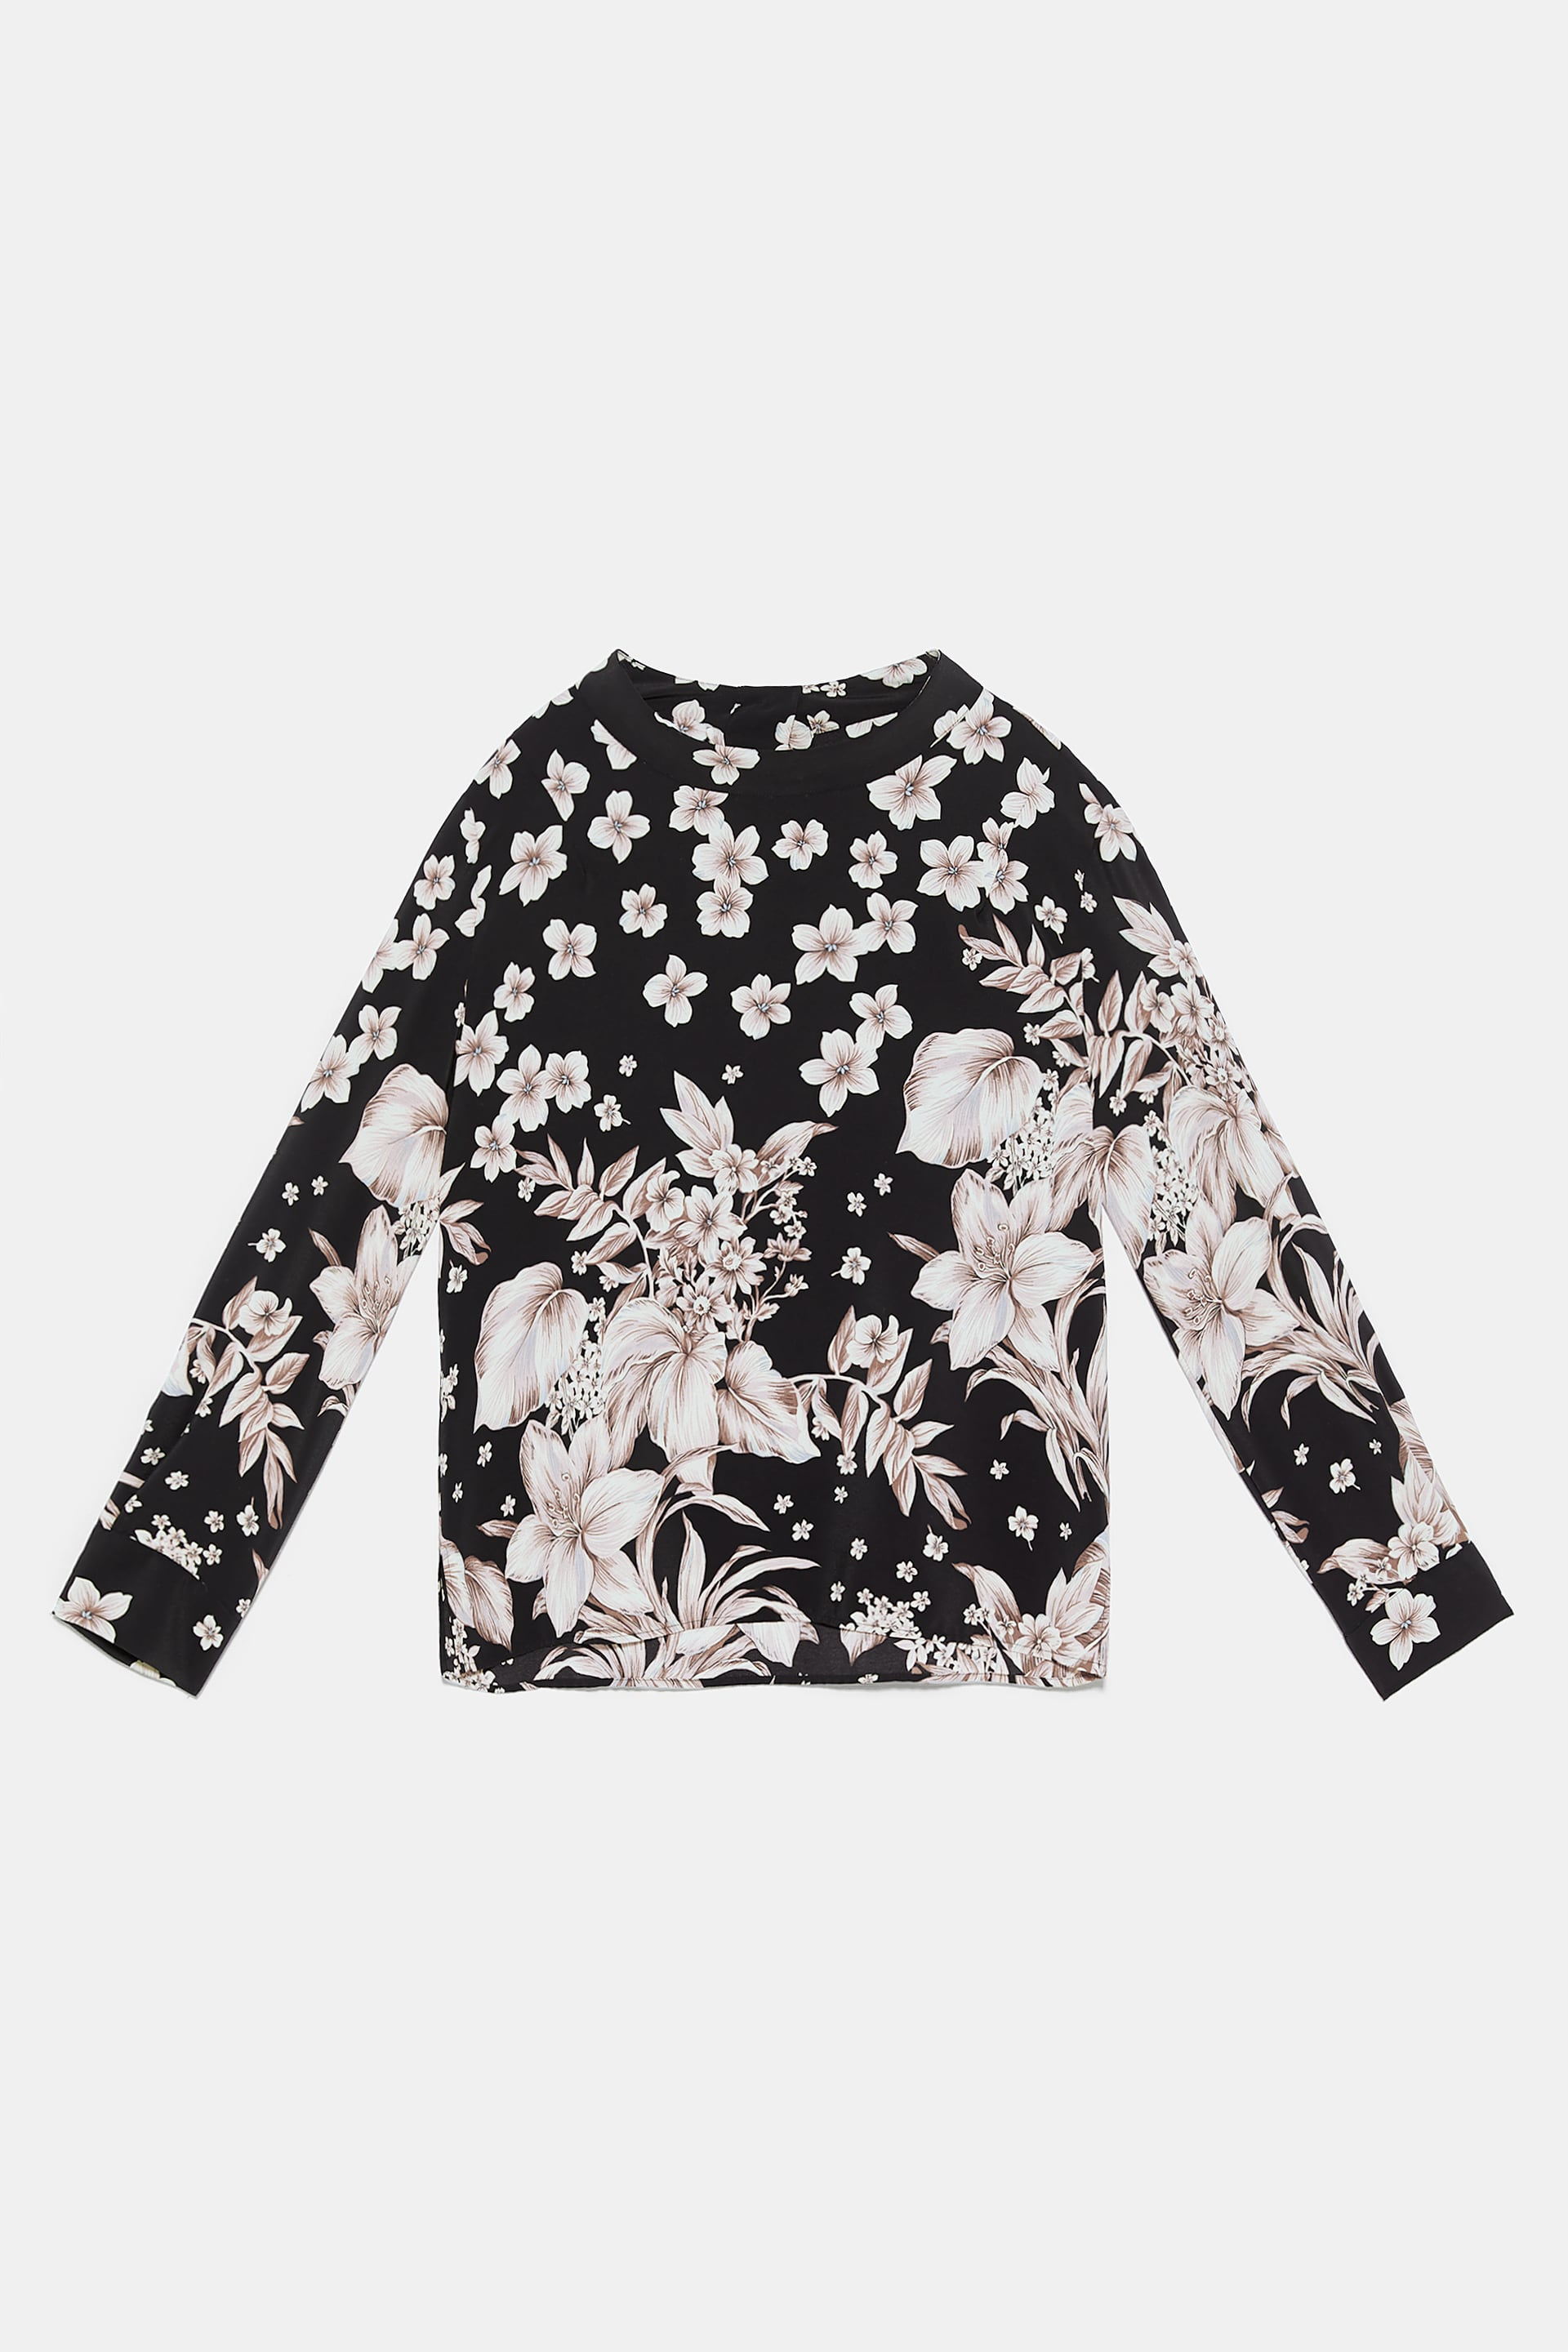 19f621e8 FLORAL PRINT TOP - Tops-SHIRTS | BLOUSES-WOMAN | ZARA International